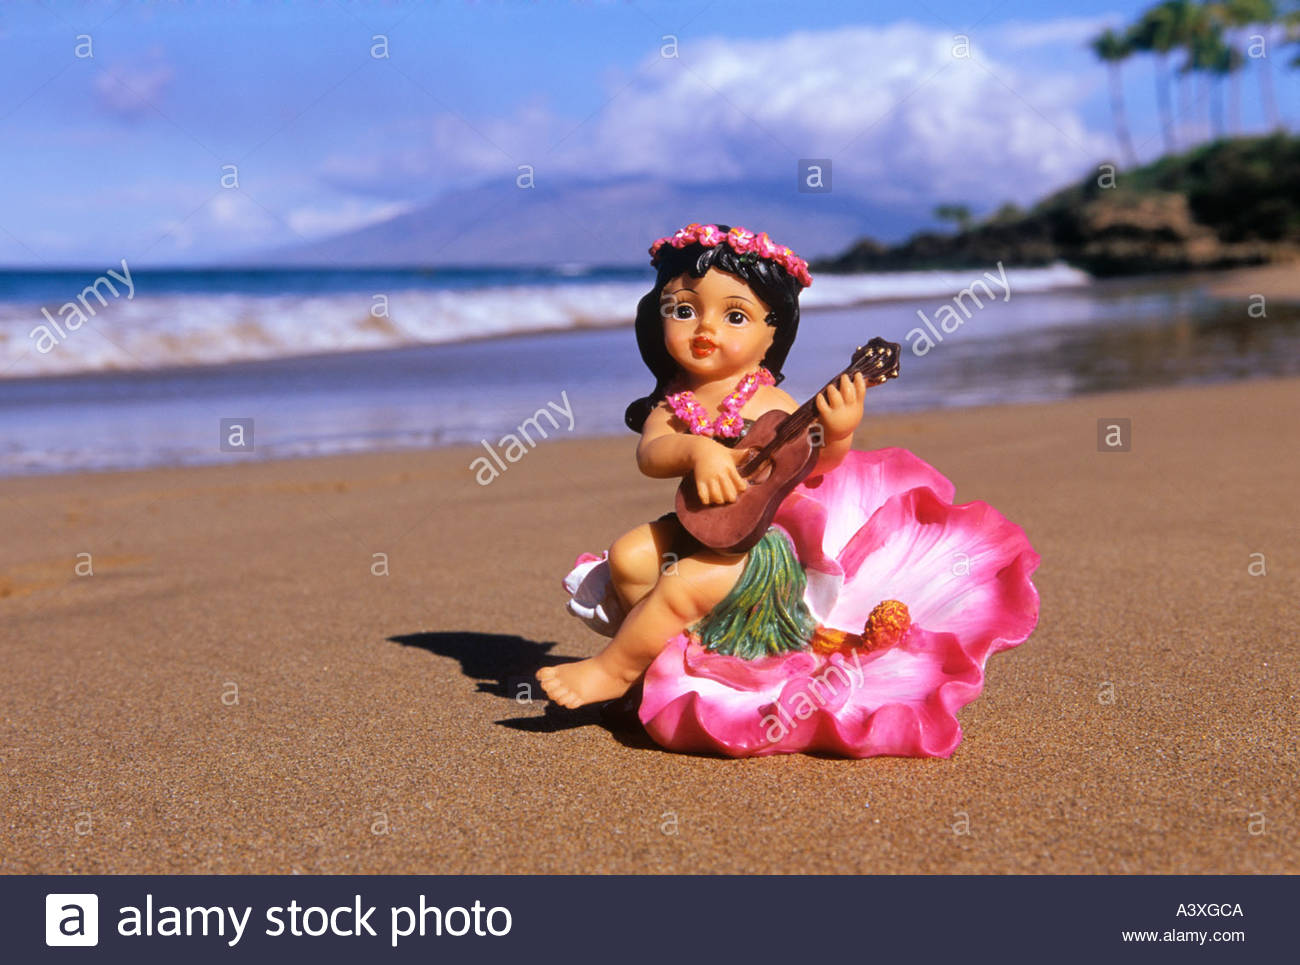 Figurine of Hula dancer with ukelele on beach at Wailea on the island of Maui in the state of Hawaii USA - Stock Image